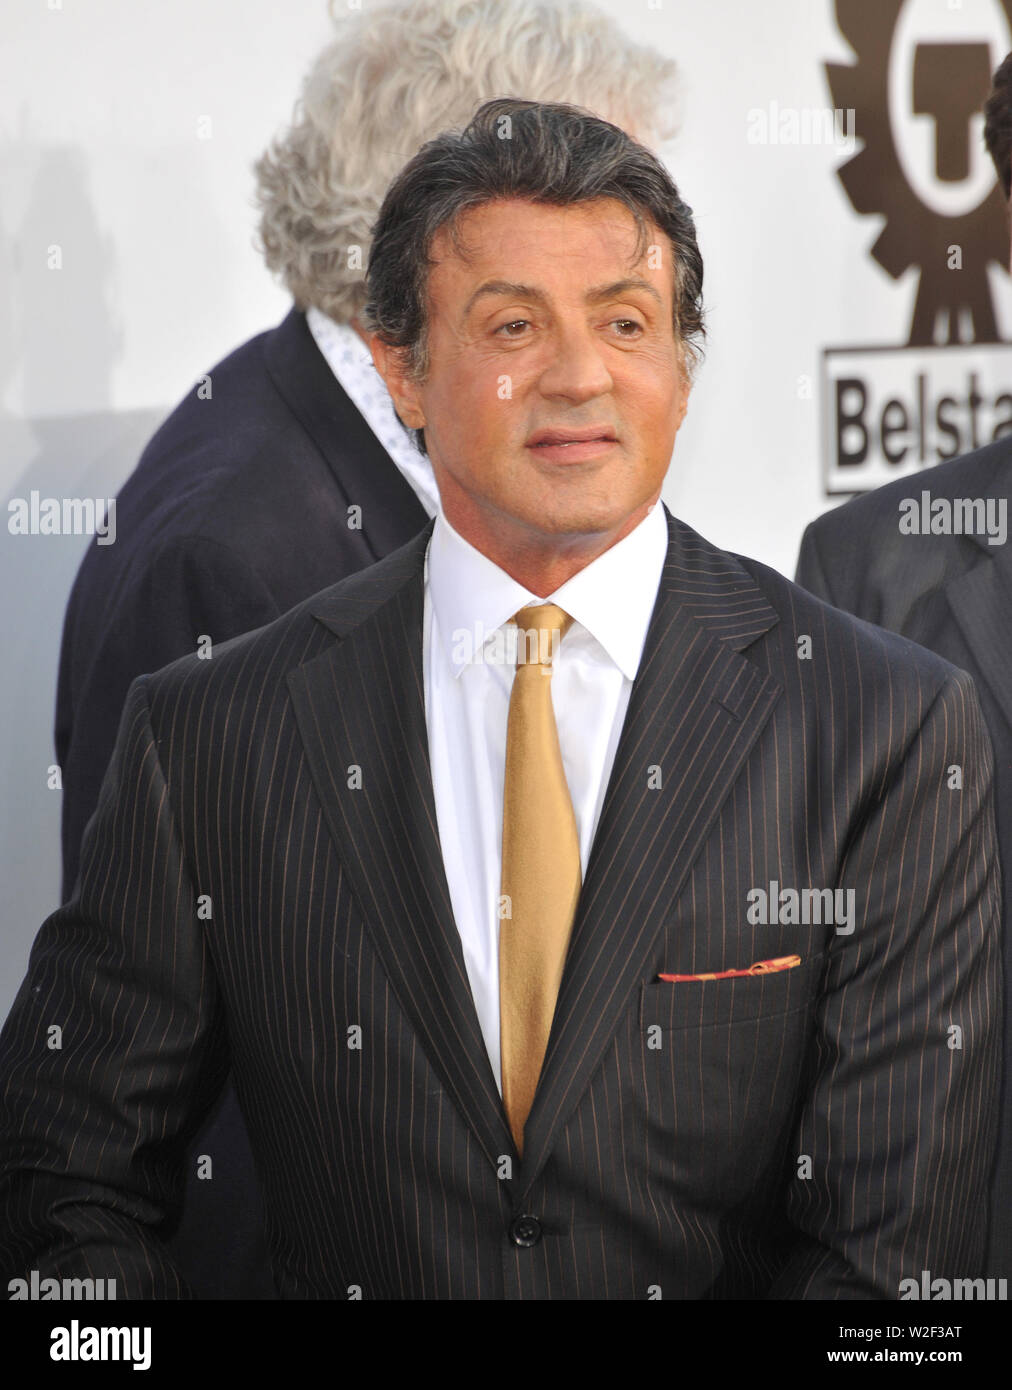 LOS ANGELES, CA. August 03, 2010: Sylvester Stallone at the world premiere of his new movie 'The Expendables' at Grauman's Chinese Theatre, Hollywood. © 2010 Paul Smith / Featureflash - Stock Image